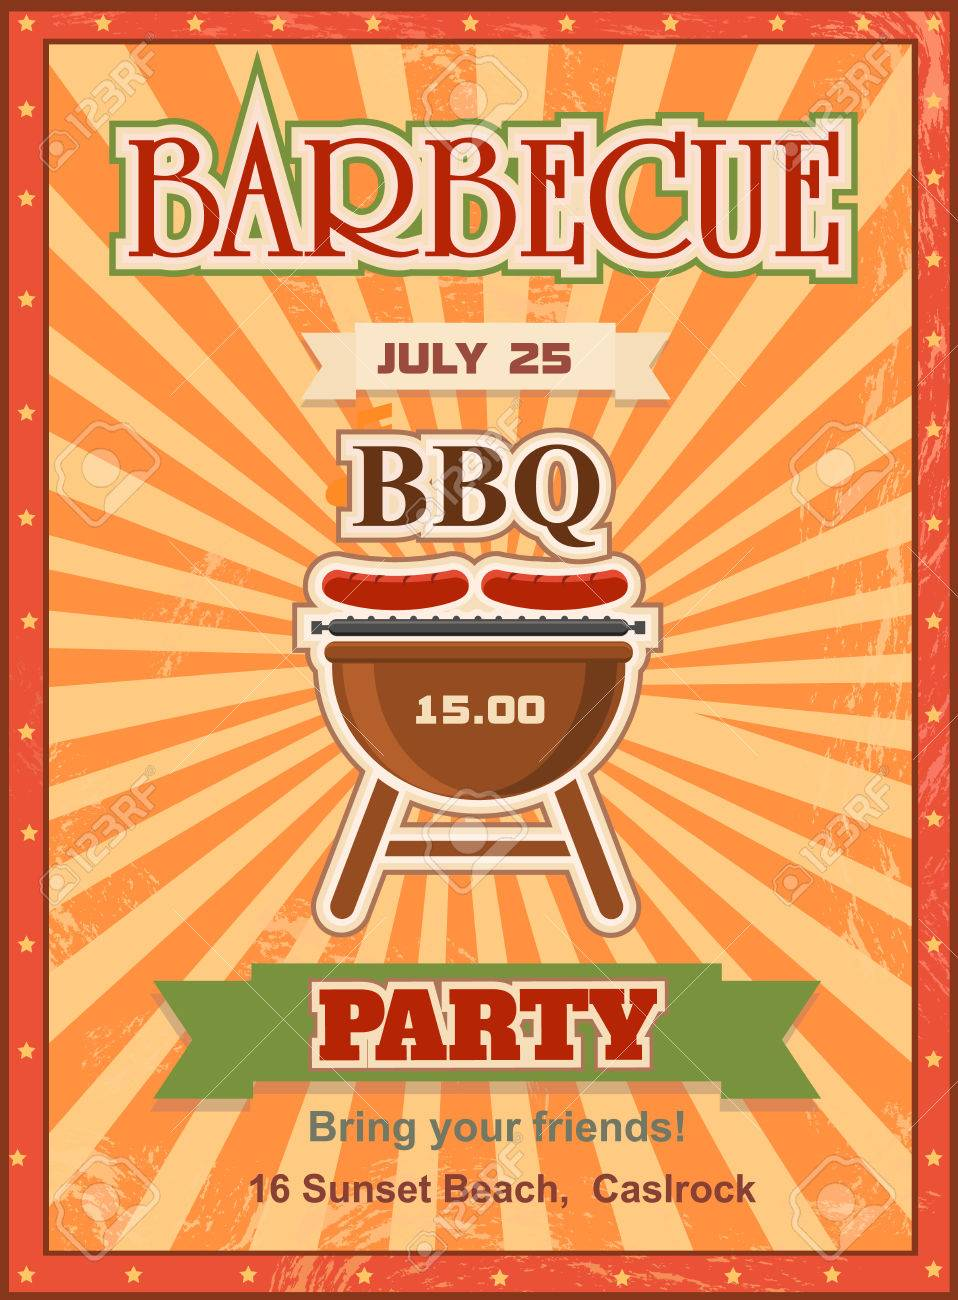 Invitation card on the barbecue design template cookout poster invitation card on the barbecue design template cookout poster design with charcoal grill sausages on pronofoot35fo Images